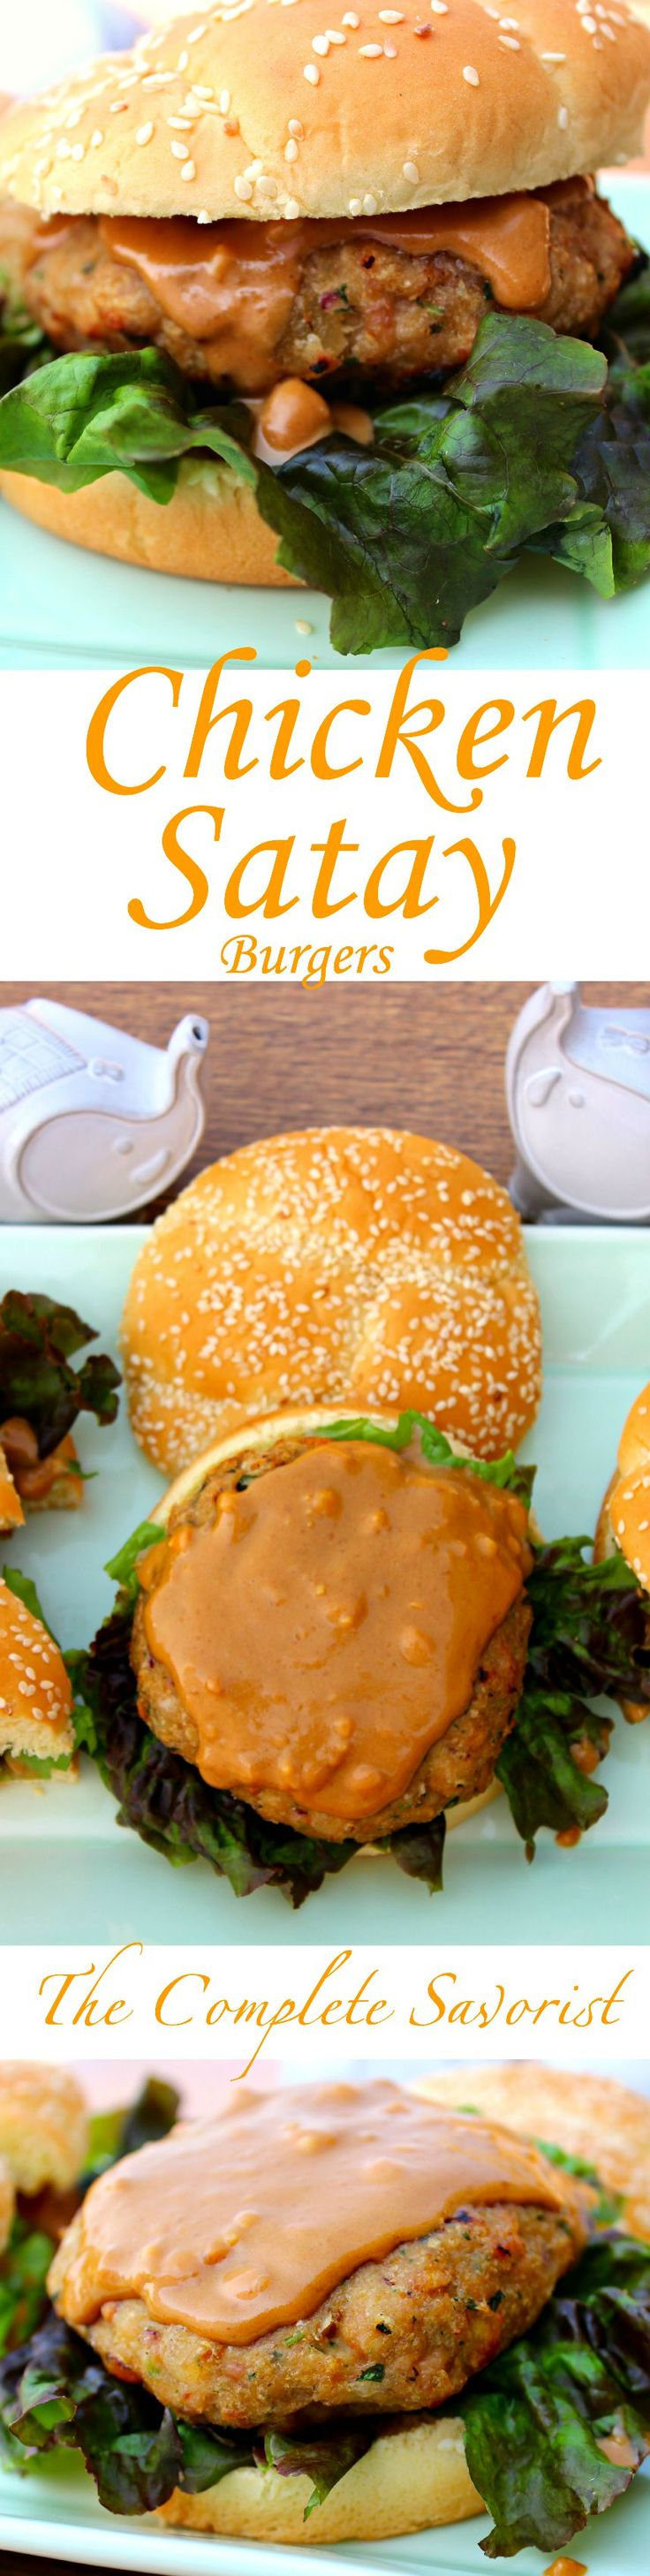 Chicken Satay Burger ~ Freshly ground chicken to seasoned like the classic Asian chicken satay topped with peanut sauce ~ The Complete Savorist